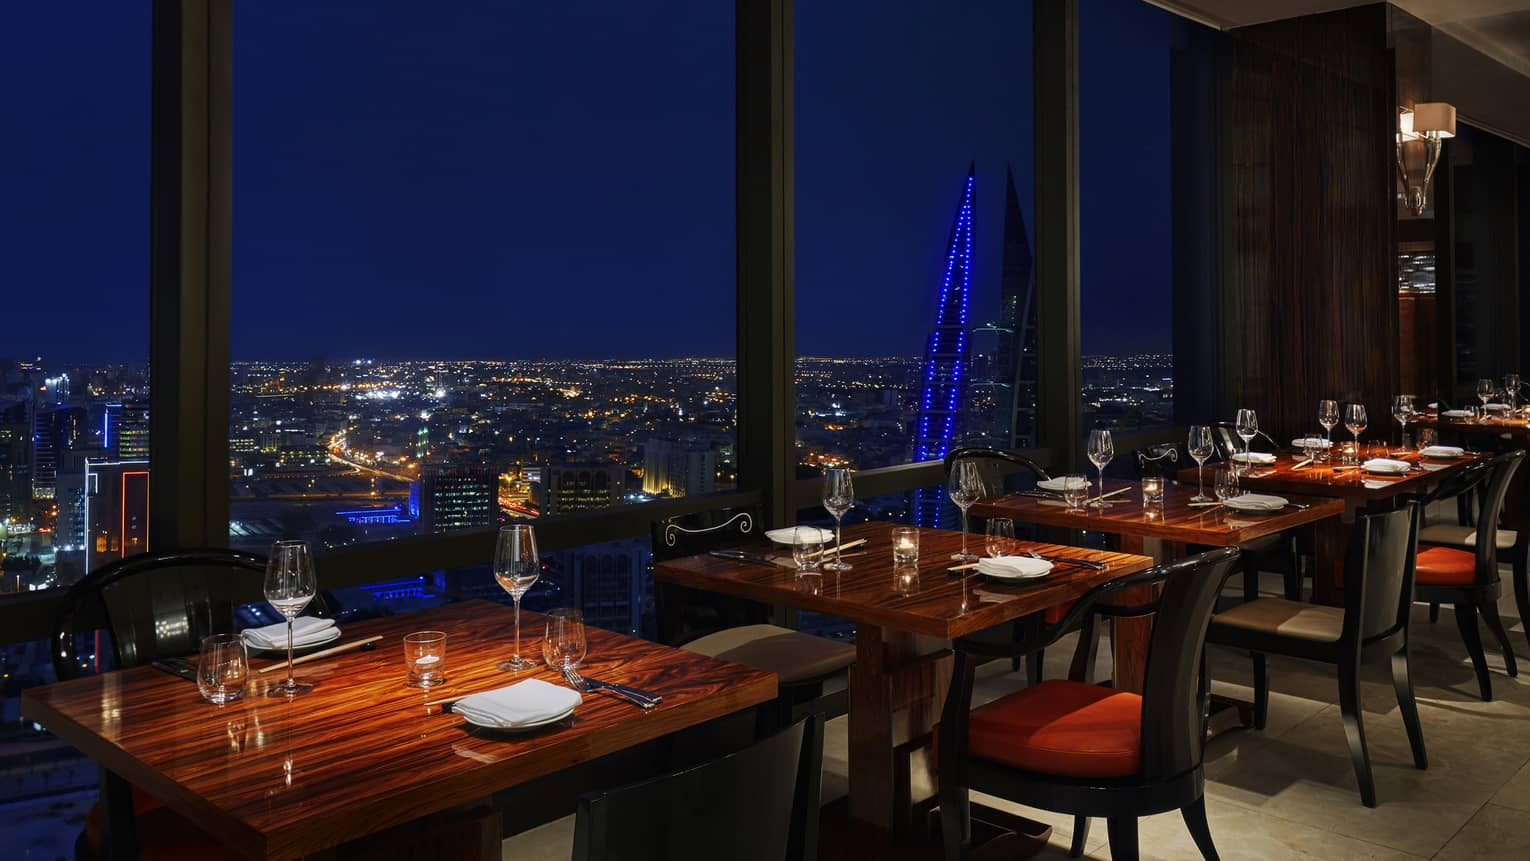 Re Asian Cuisine dining tables along floor-to-ceiling windows looking out at city lights at night